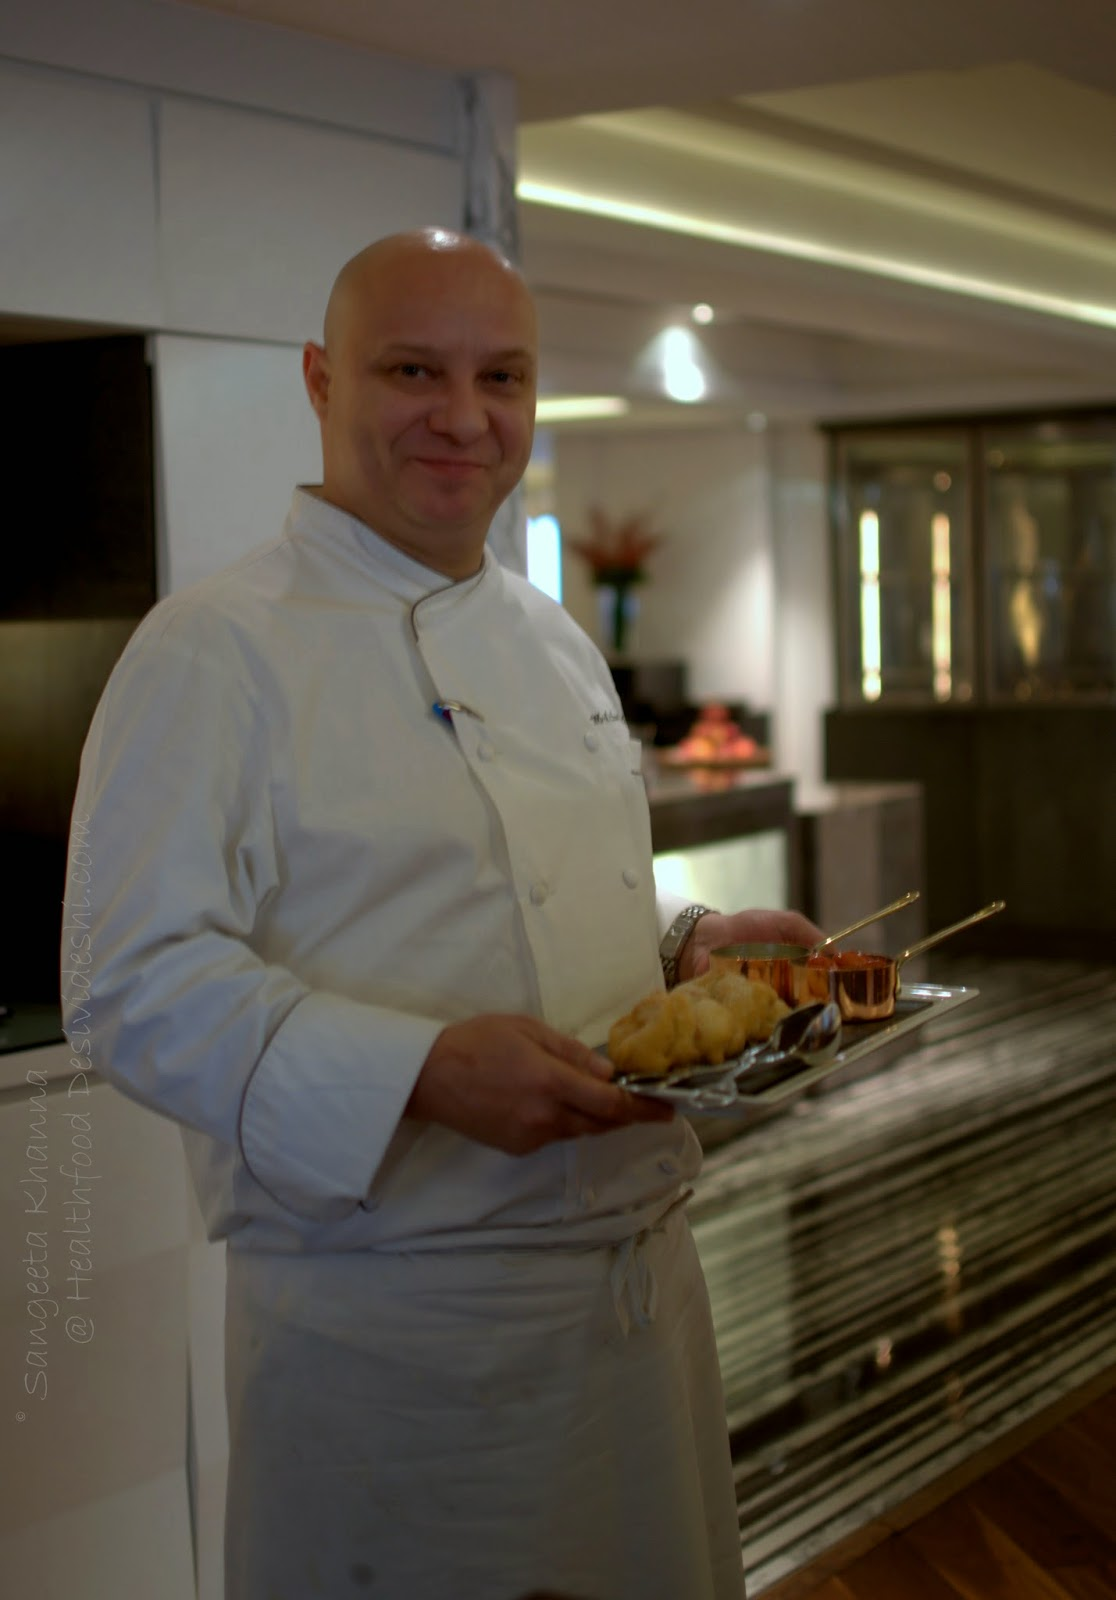 a stammtisch lunch at Hyatt Regency : Swiss-German food served in a cozy set up and a masterclass by Chef Marin Leuthard